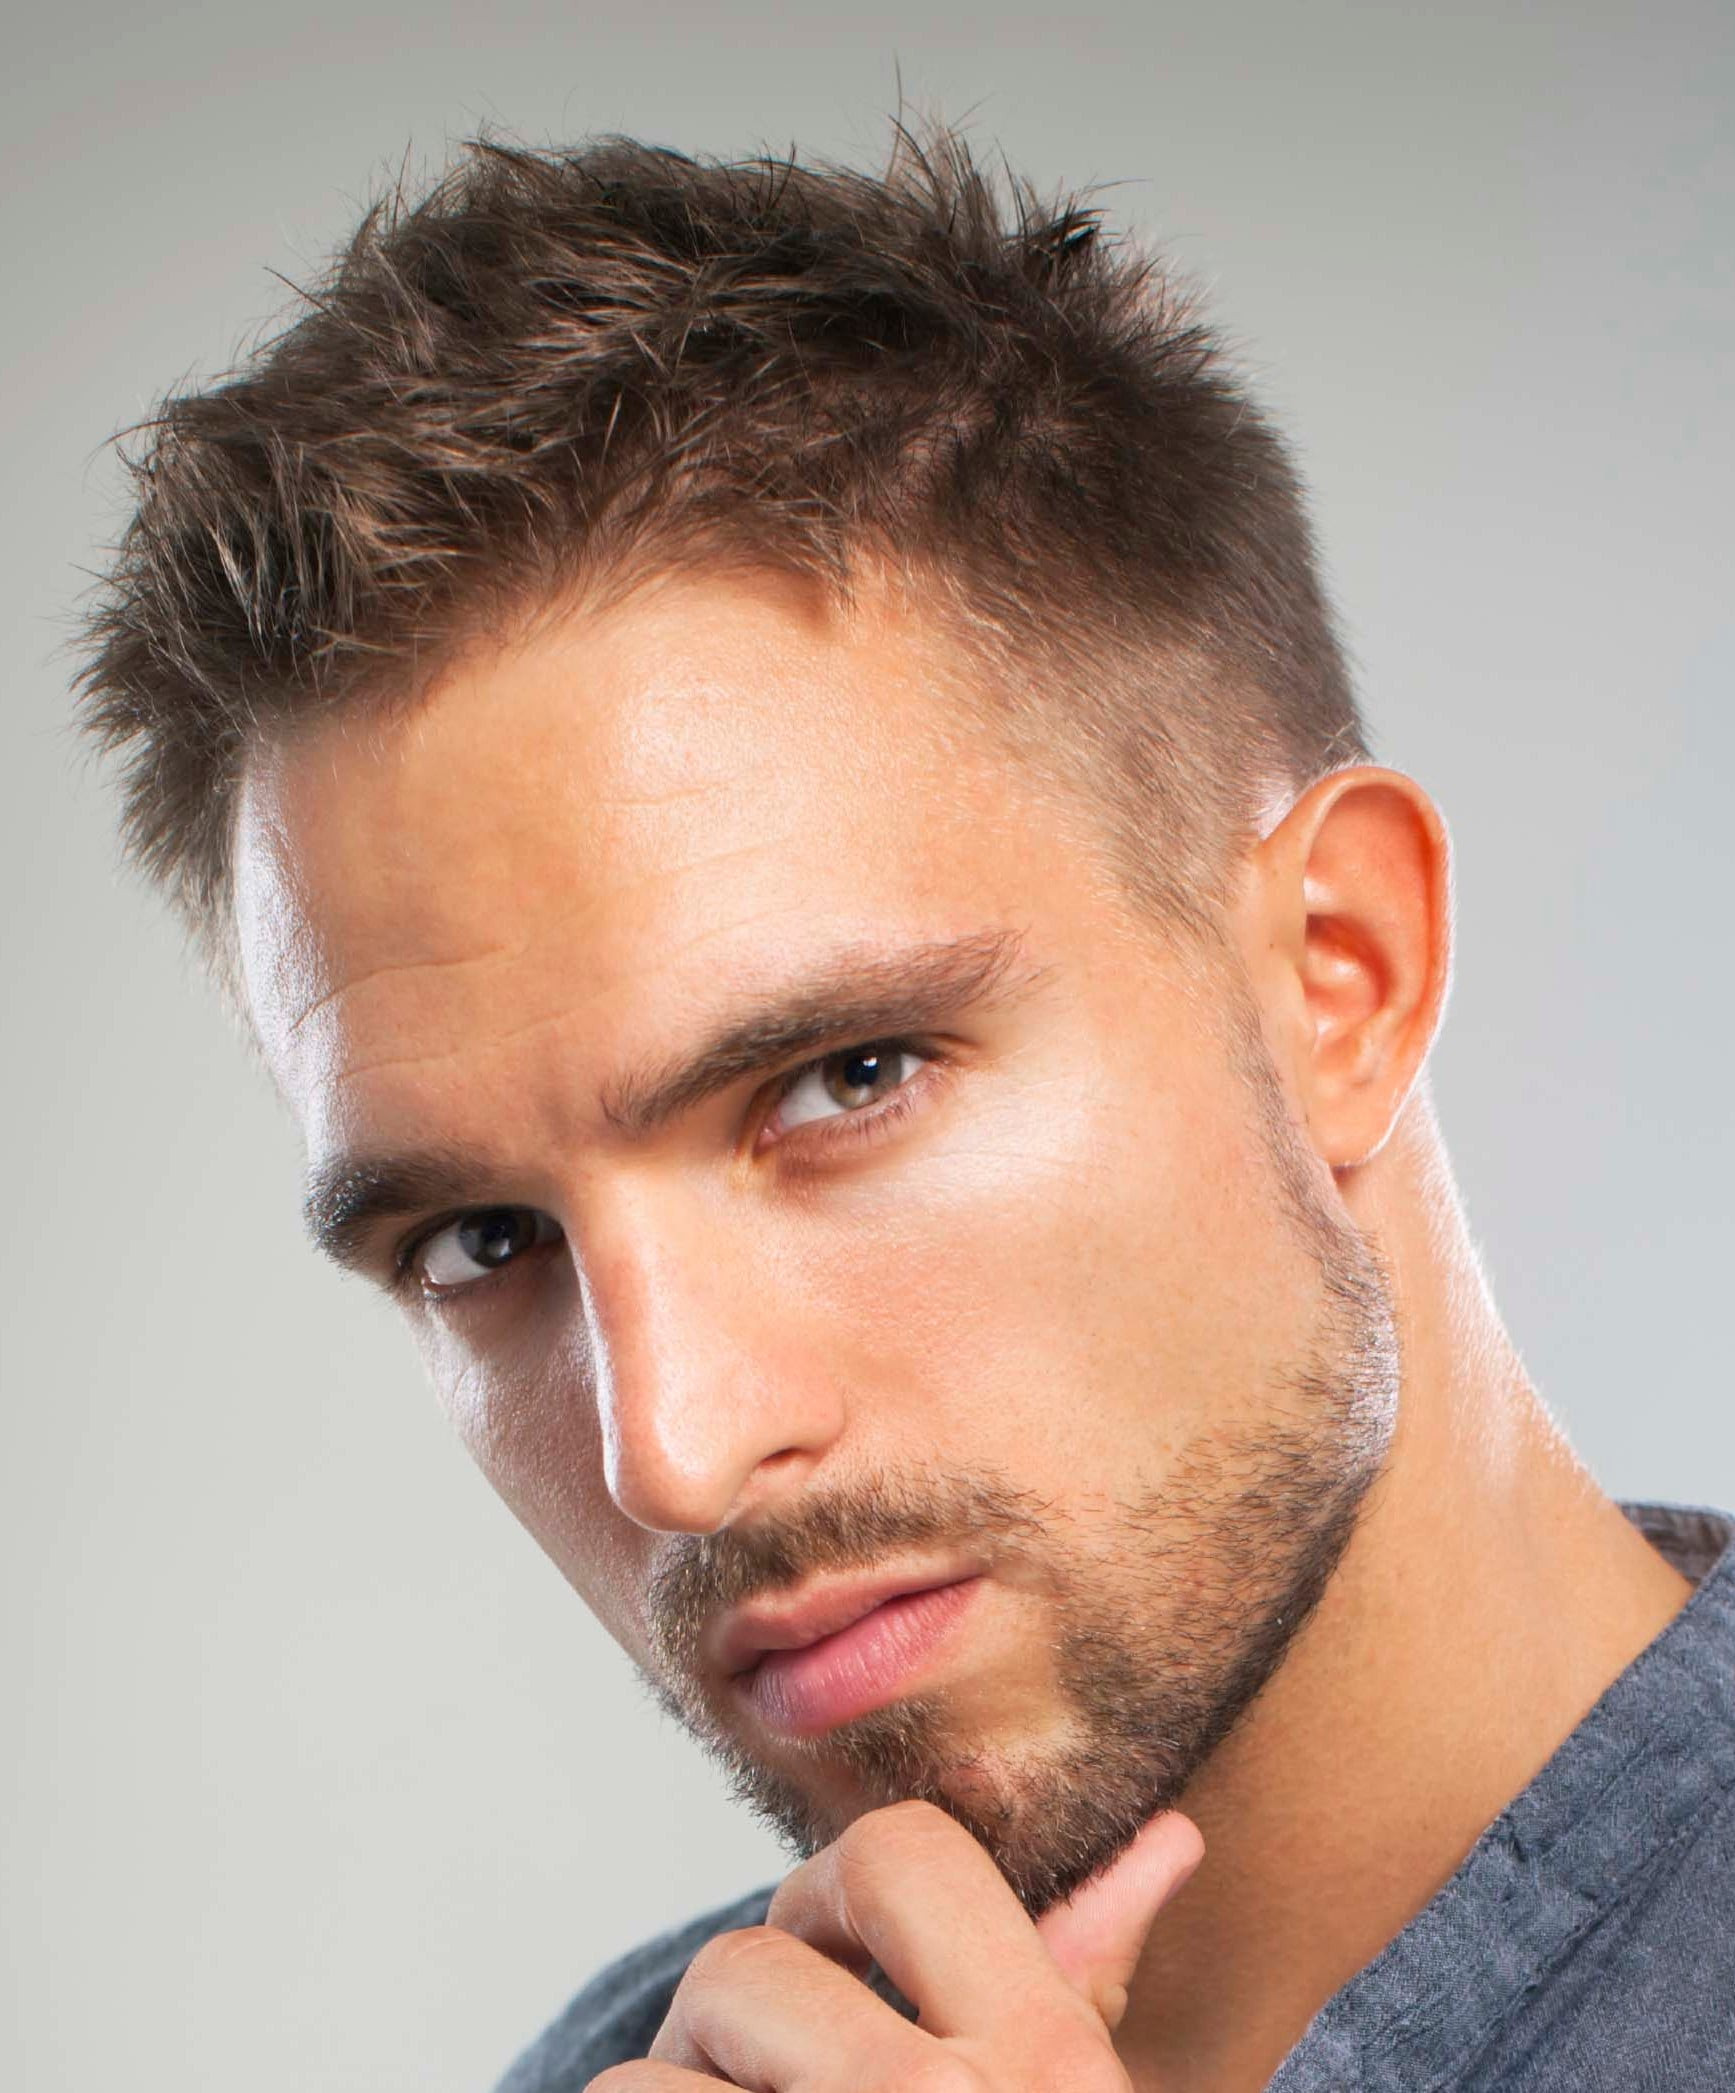 Best ideas about Best Mens Hairstyles For Thin Hair . Save or Pin 5 the best hairstyles for men with thin hair Now.